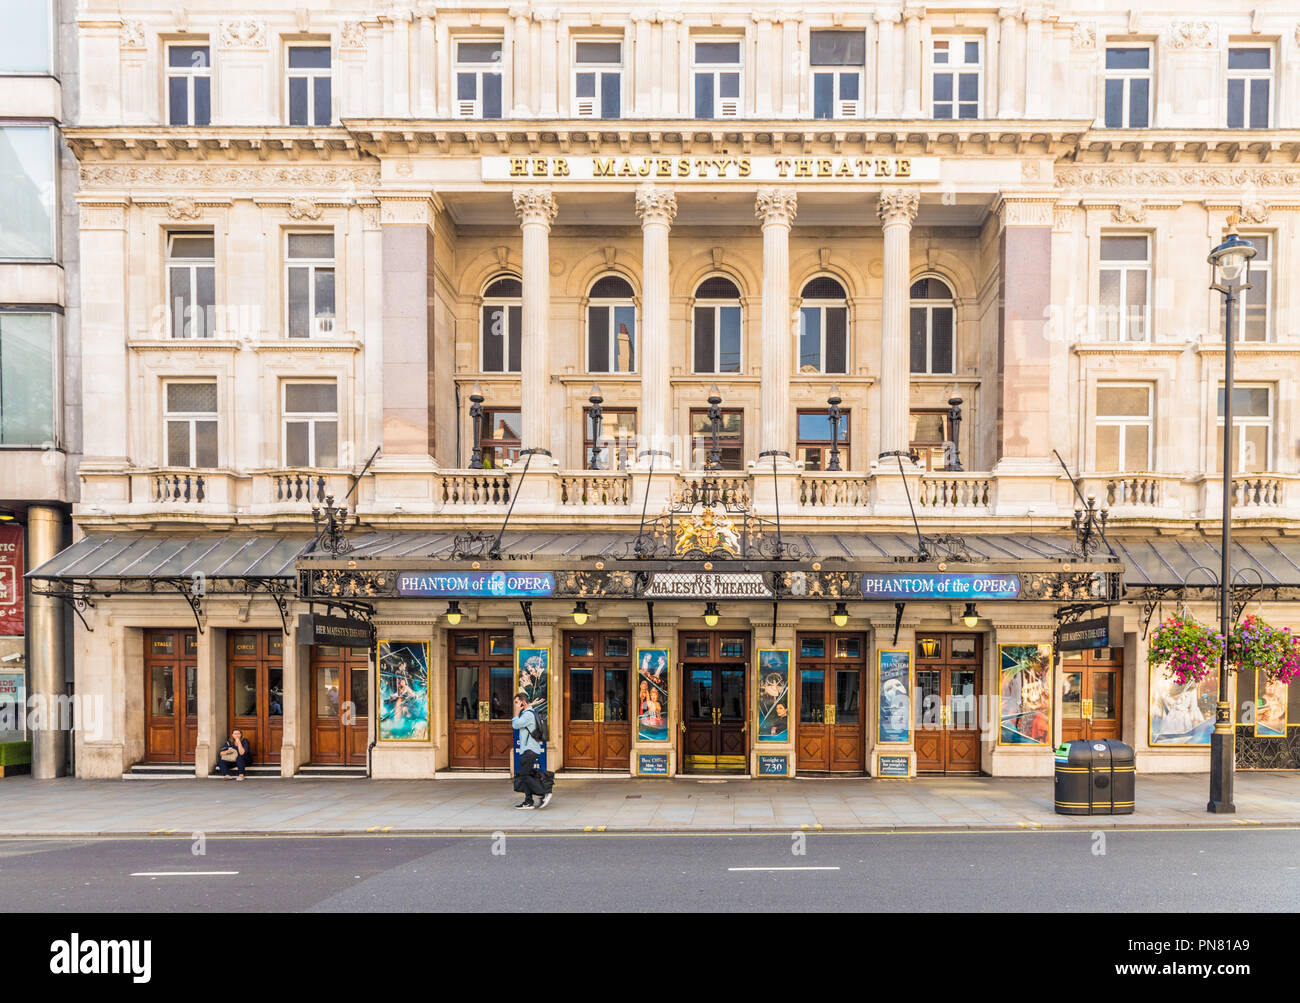 London. September 2018. A view of Her Majestys theatre in London - Stock Image